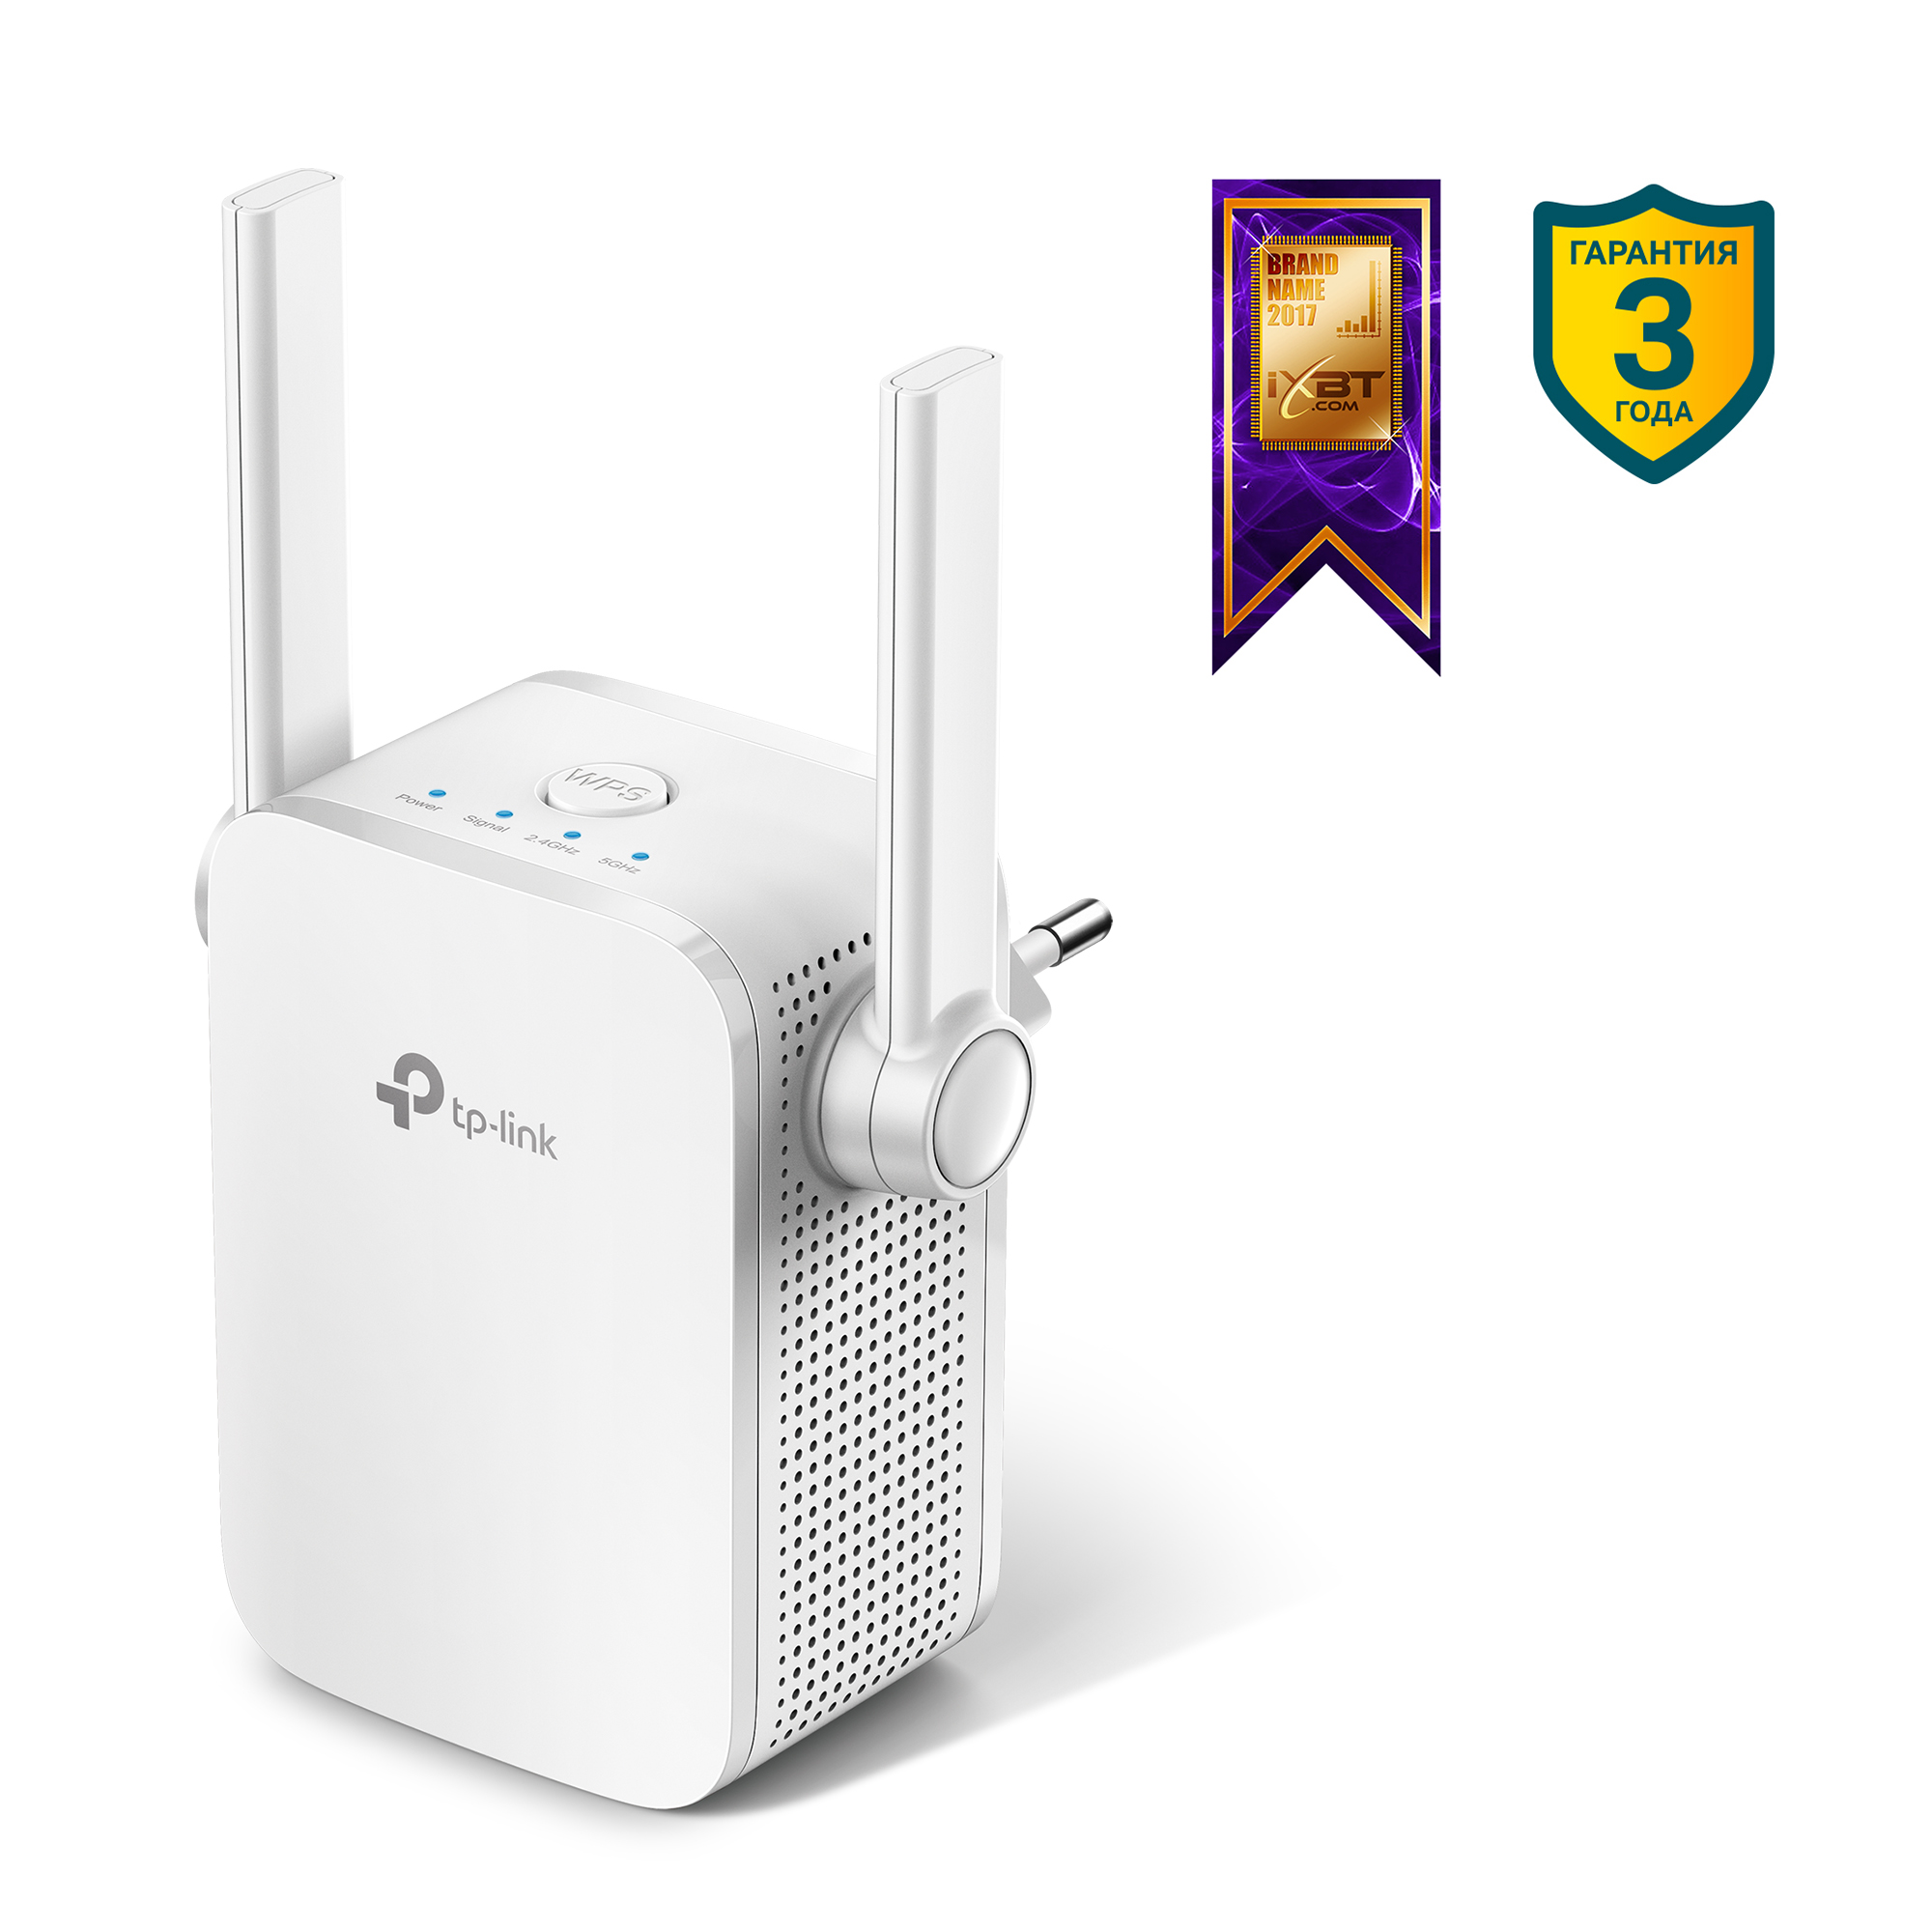 Wi-Fi репитер TP-LINK RE305 AC1200 802.11acbgn, 300/867Mbps, 2.4/5GHz, RJ-45 amplifier wi fi signal with a socket tp link re360 ac1200